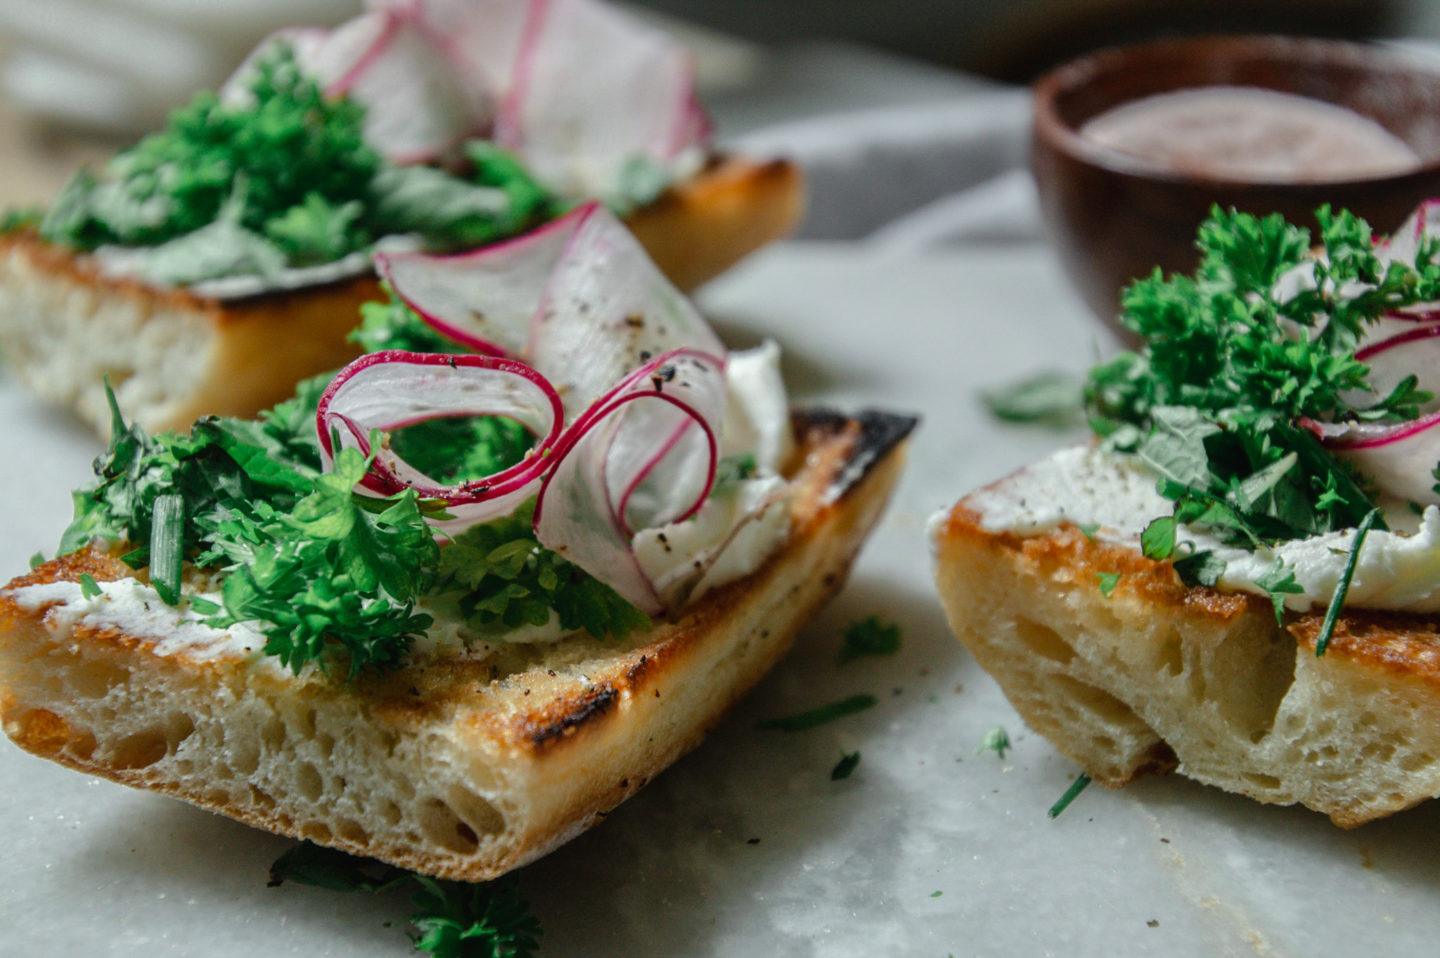 thin slices of curled radish top these toasts